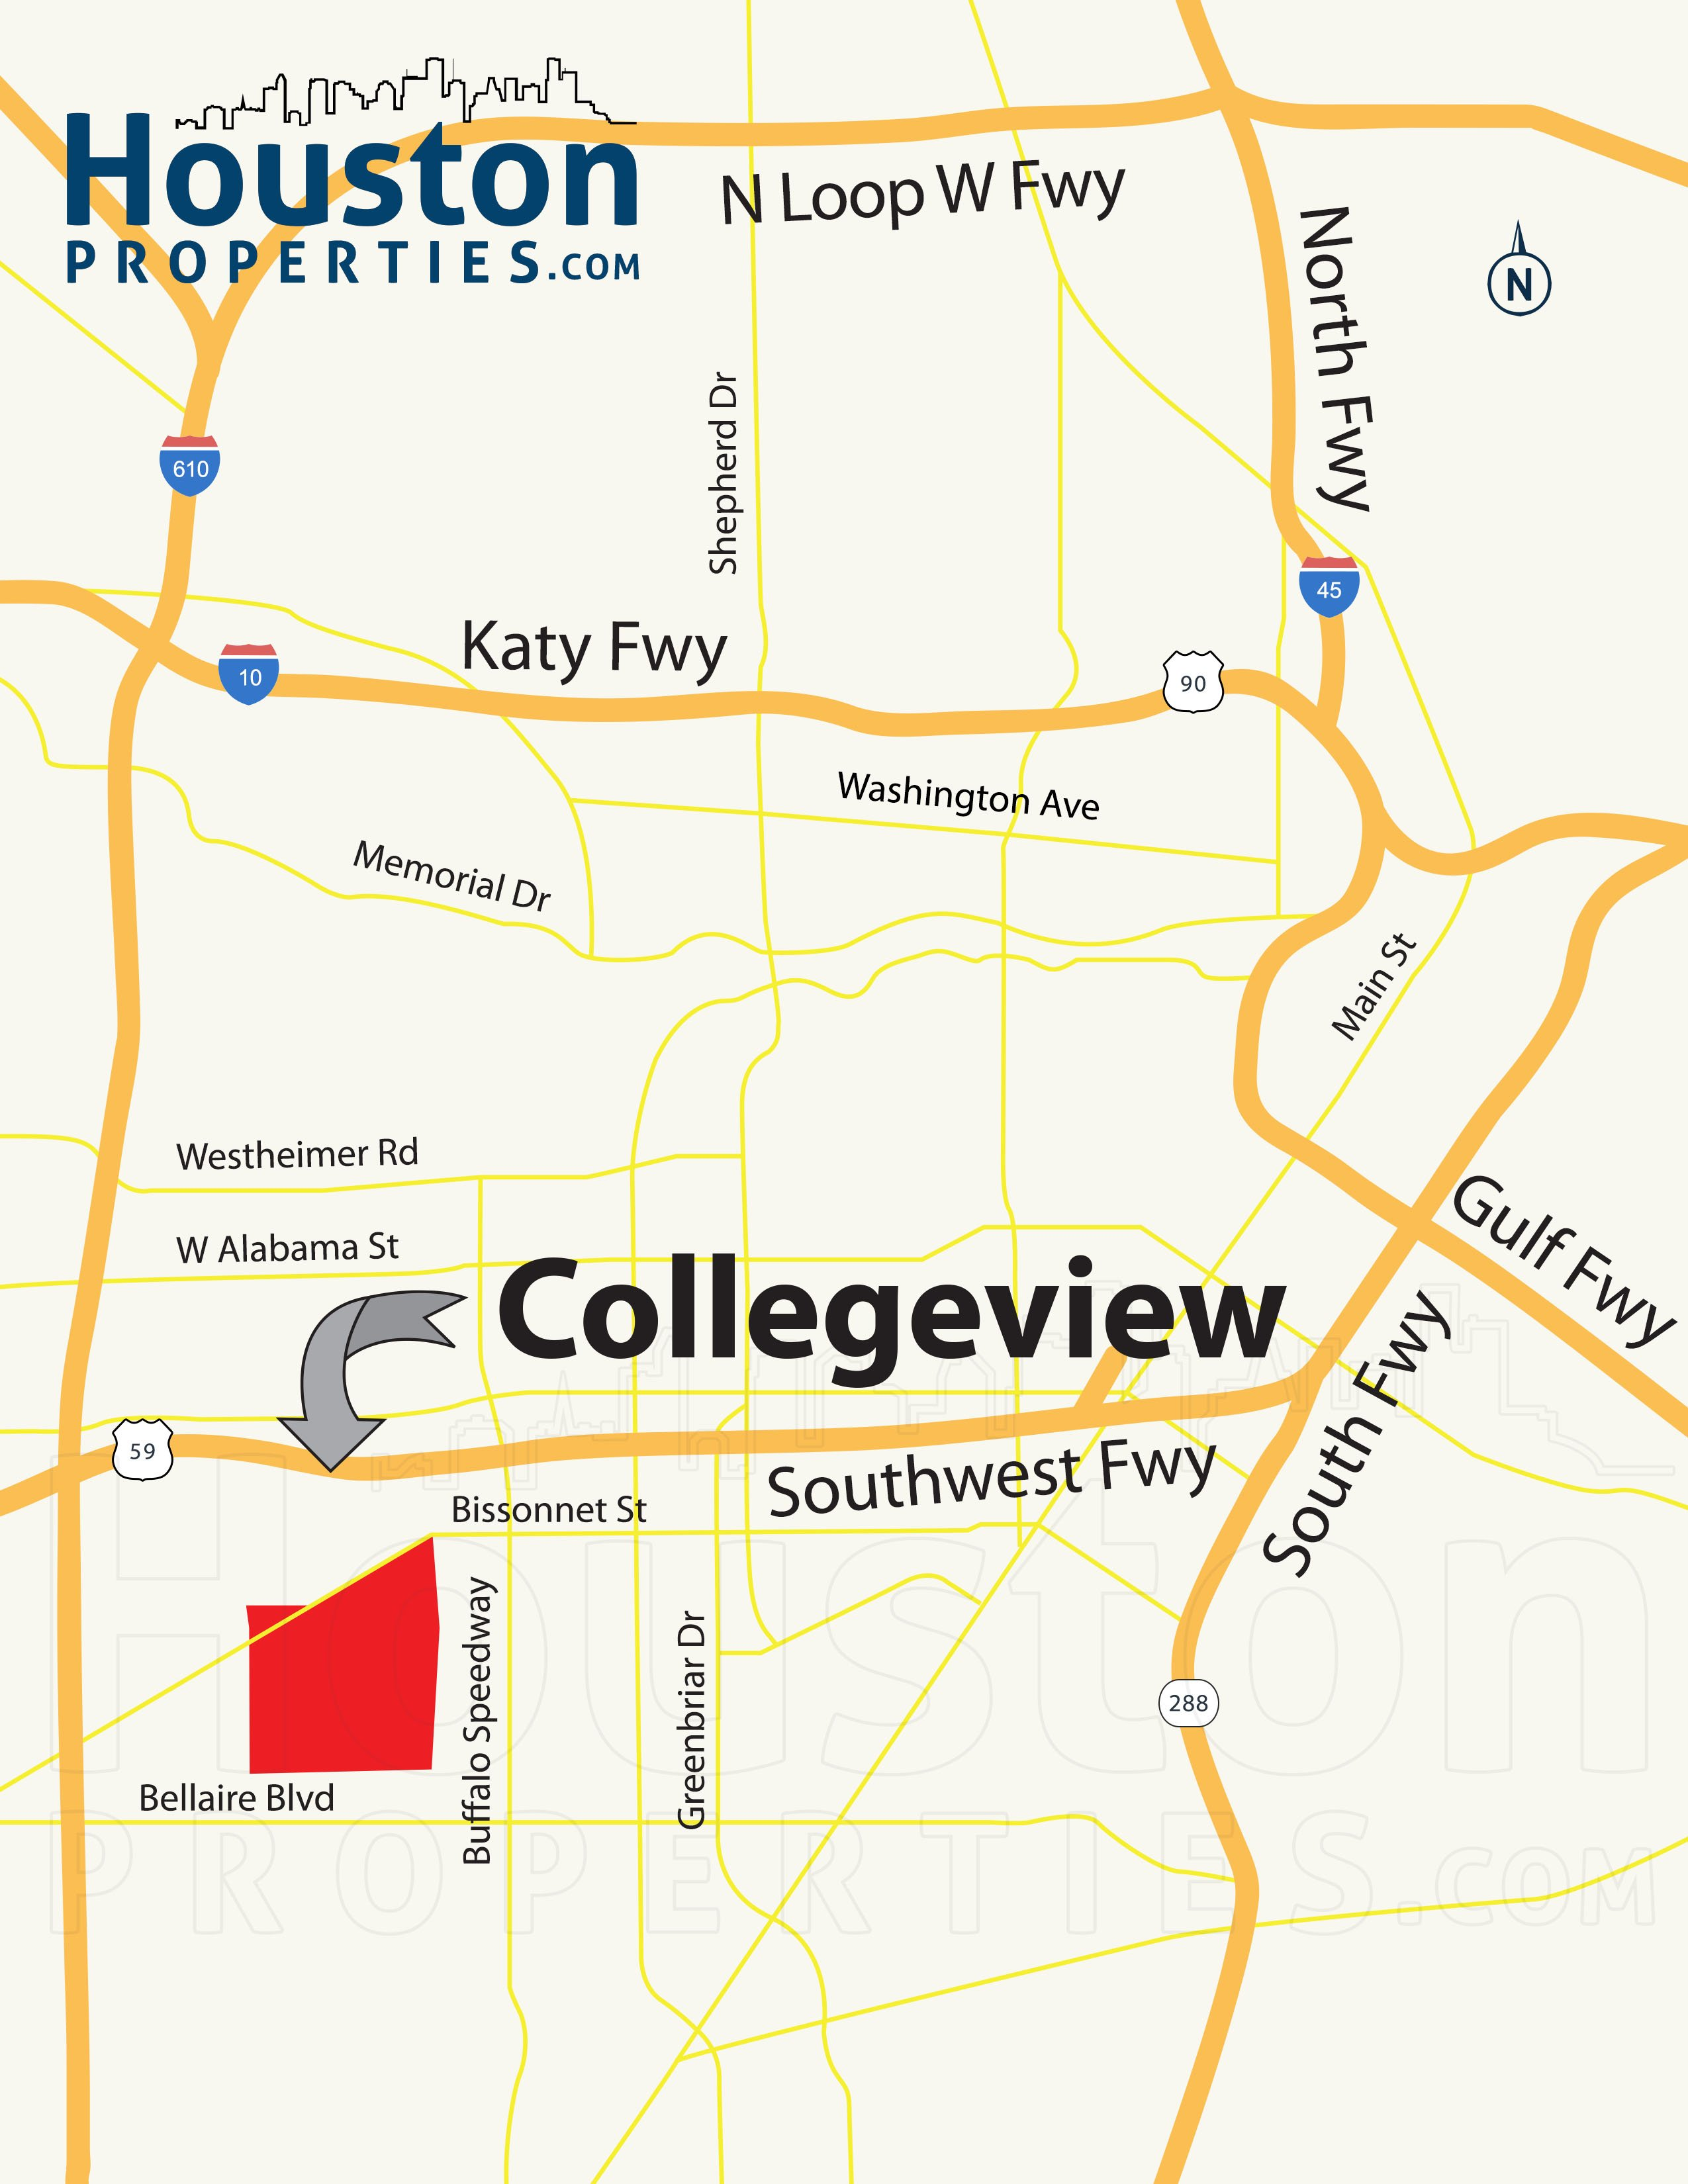 Collegeview Houston map